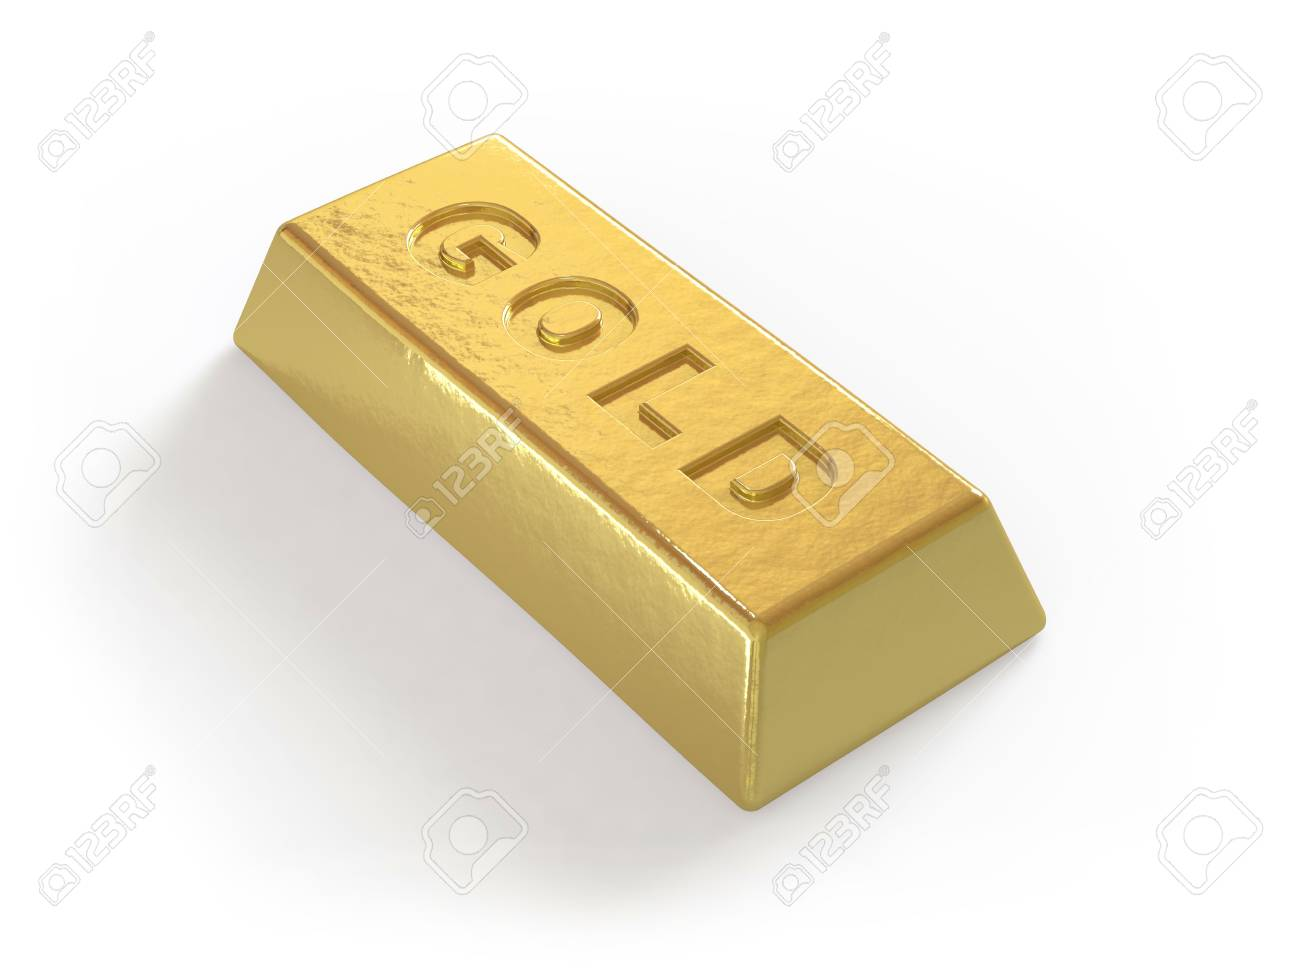 The gold ingot lies on a white surface Stock Photo - 5057961